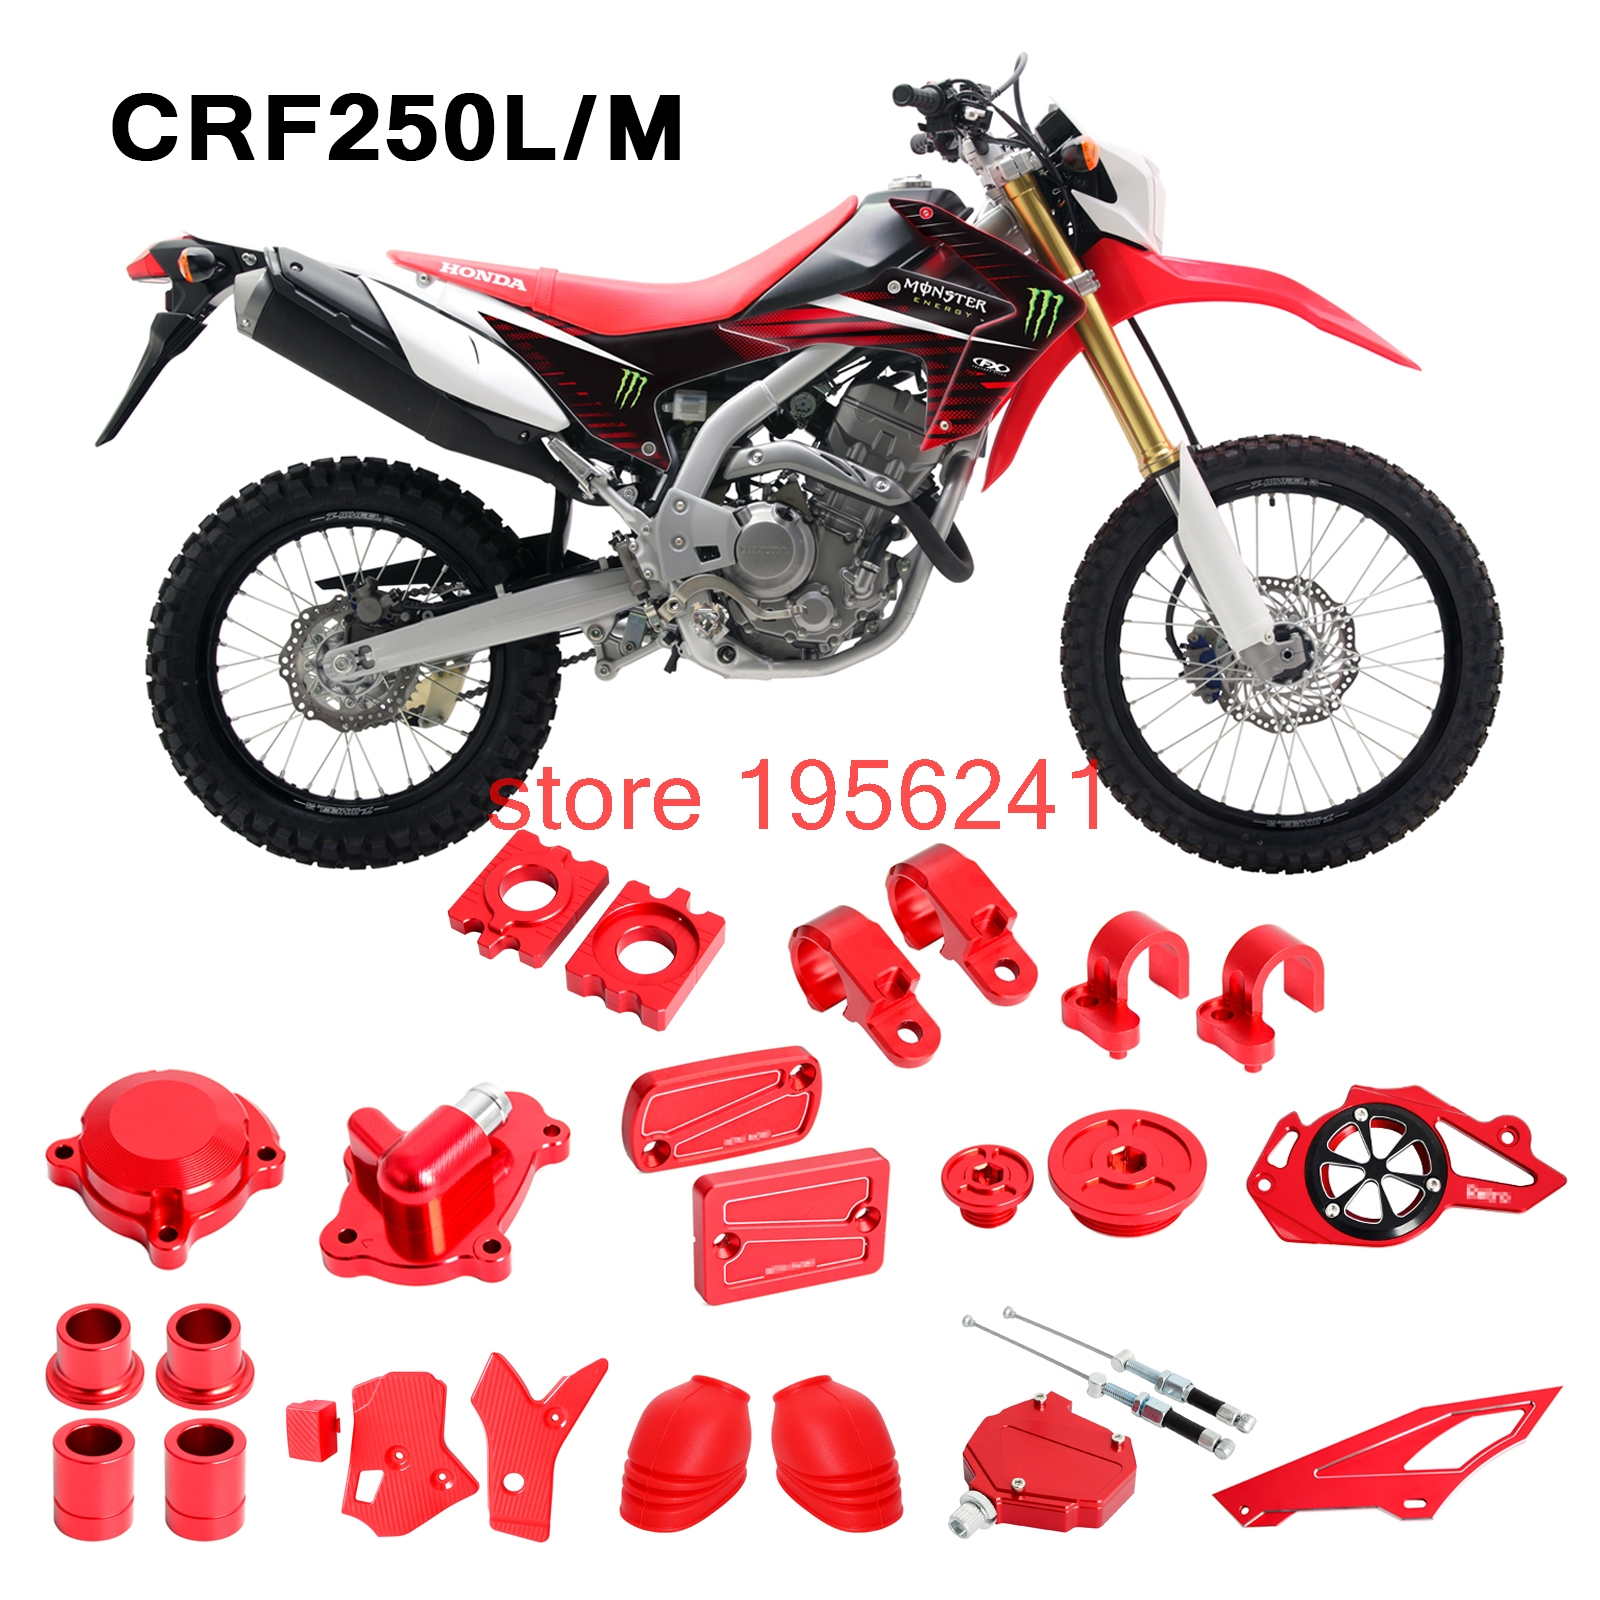 Red CNC Oil Filter Cover for Honda CRF250L//M//CRF250L Rally 2012-2017 CB300F 2015